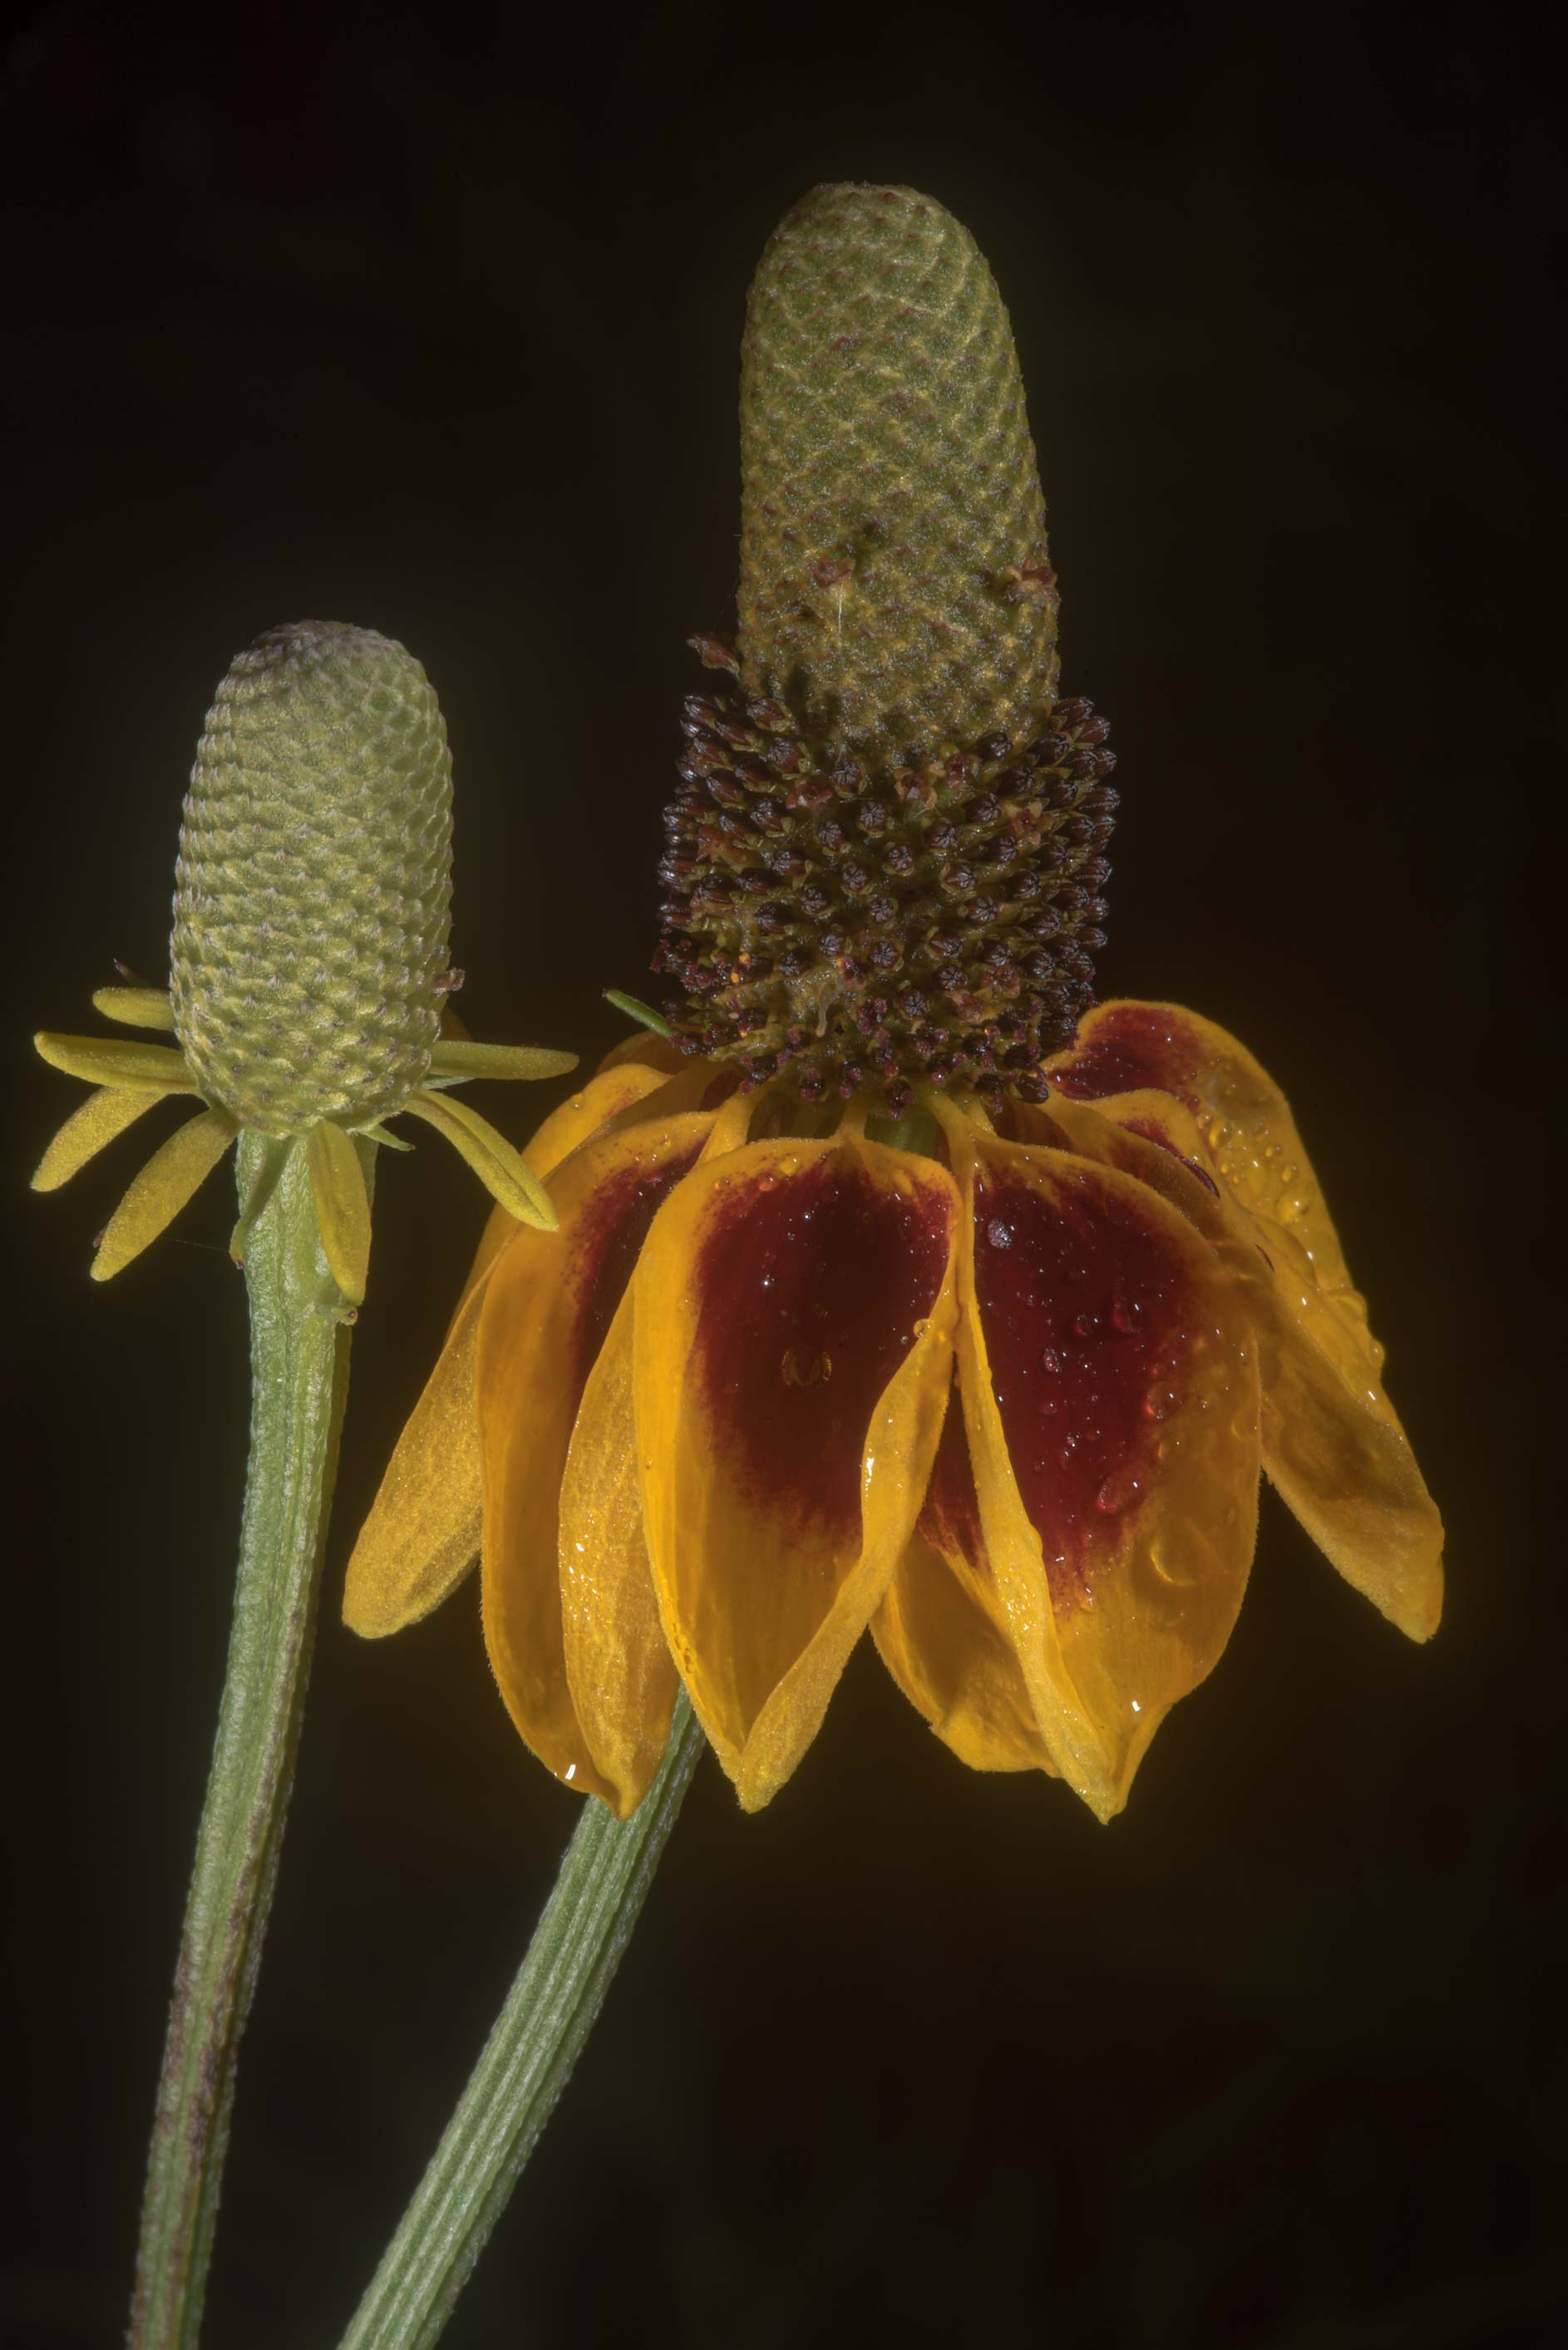 Mexican hat flower (Ratibida columnifera) in...State Historic Site. Washington, Texas